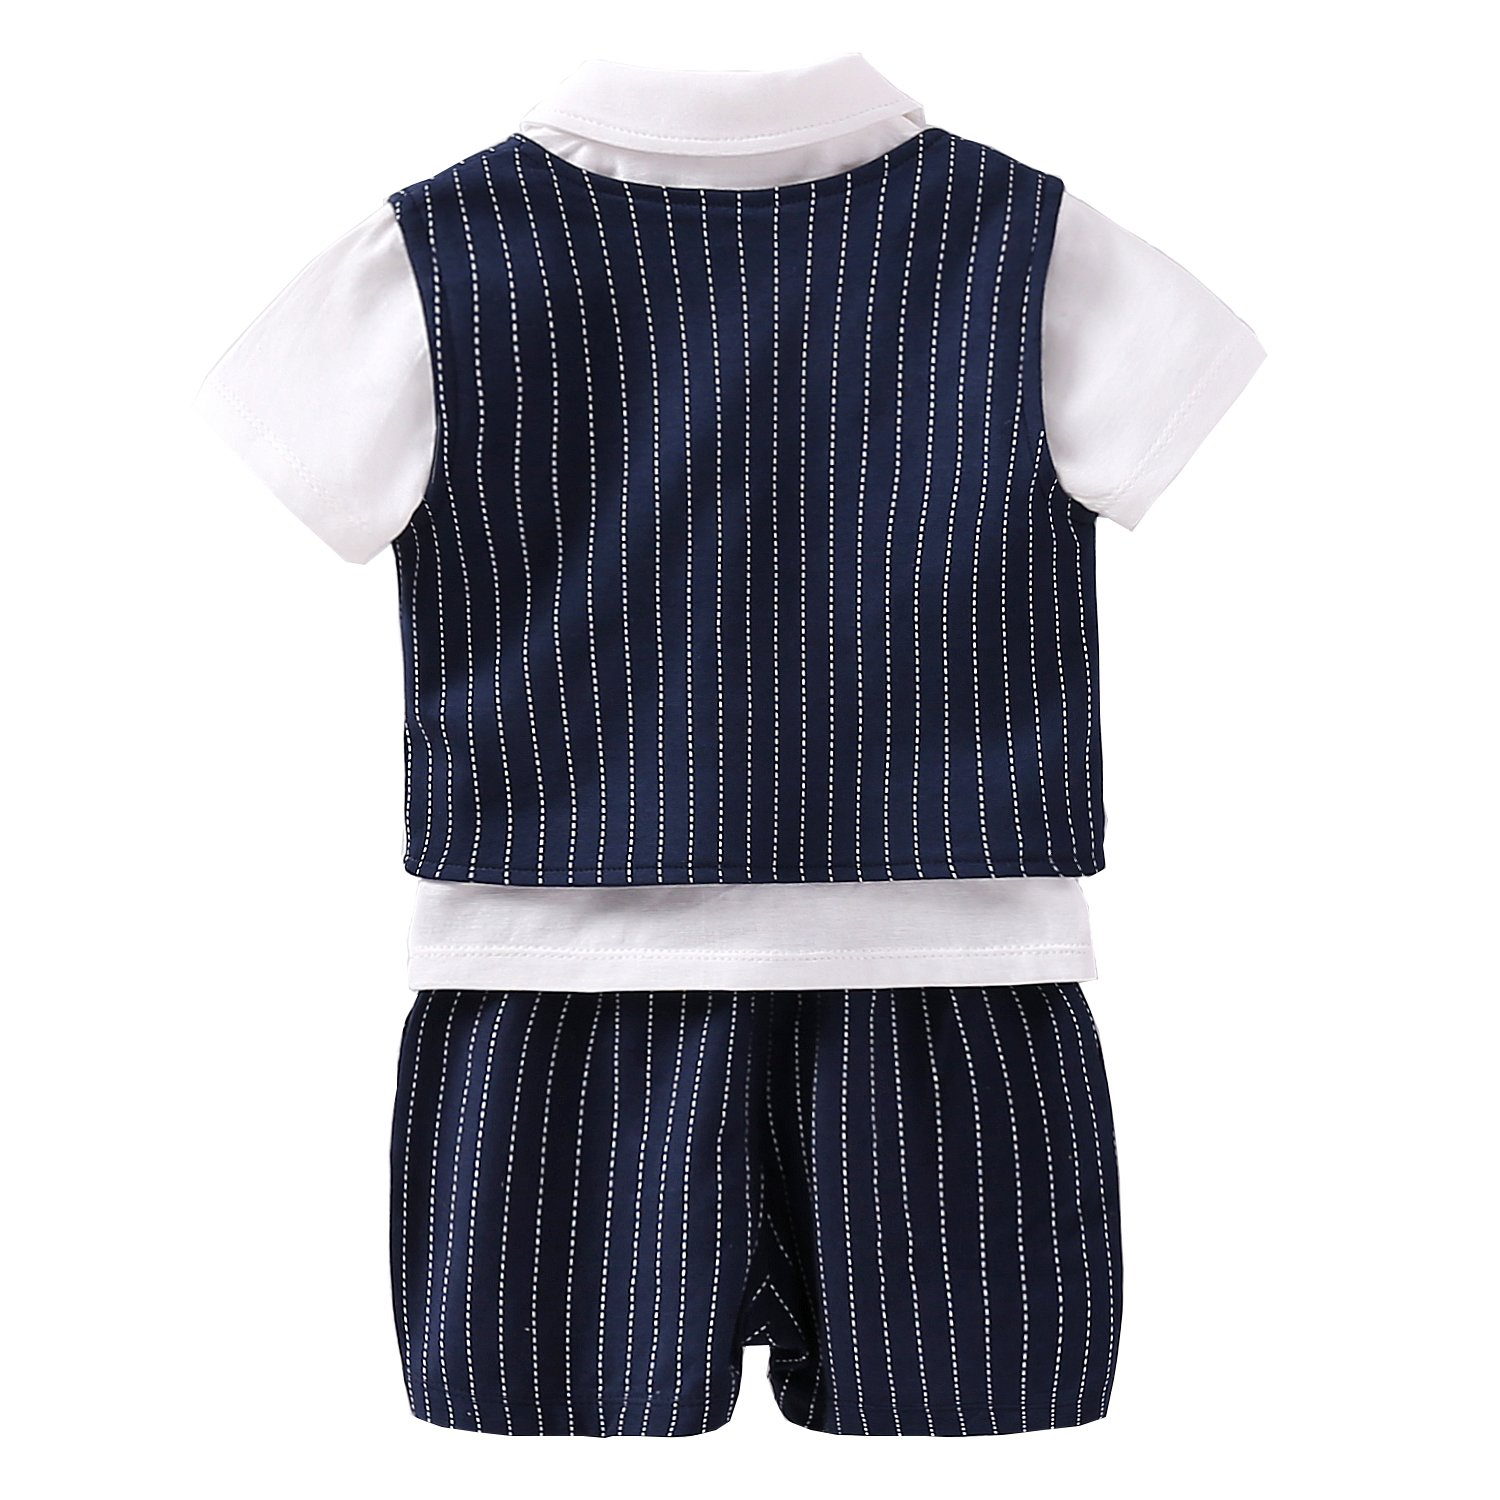 Fairy Baby Baby Boy Formal Outfit Short Sleeve Tuxedo Plaid Gentleman Suit (6-9Months, Navyblue Stripes) by Fairy Baby (Image #2)